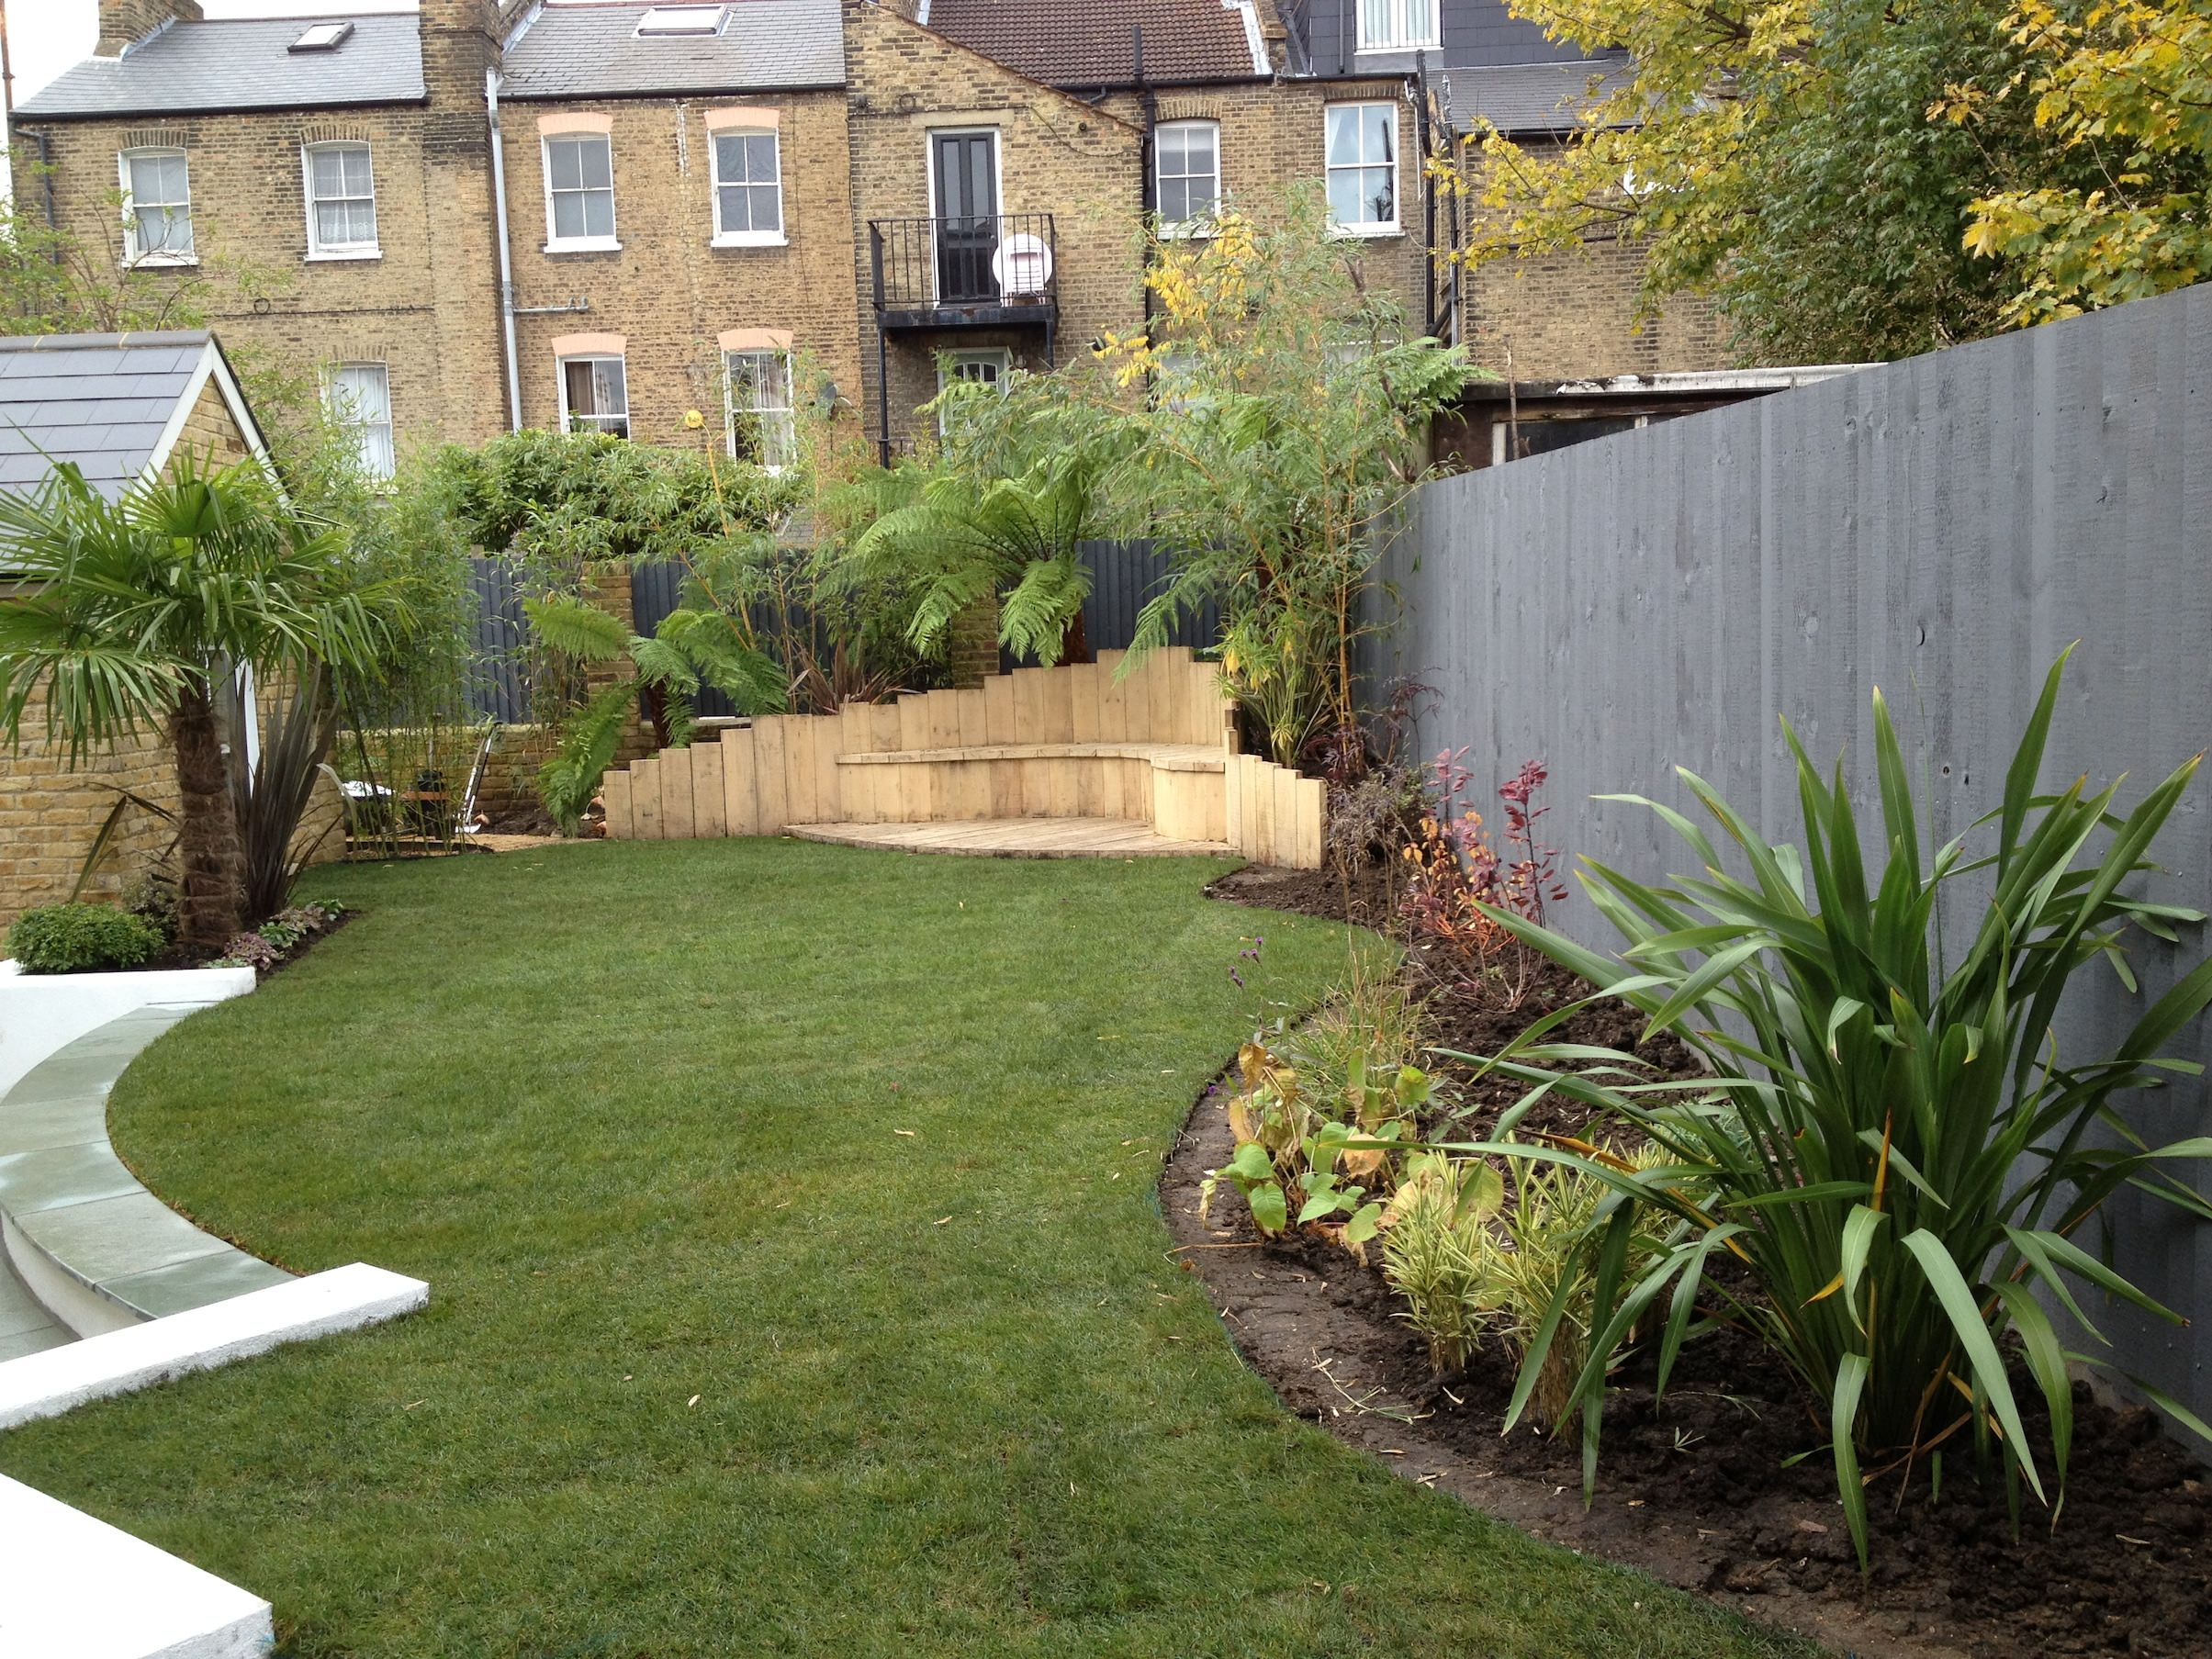 Low maintenance garden designs garden club london for Home and garden maintenance